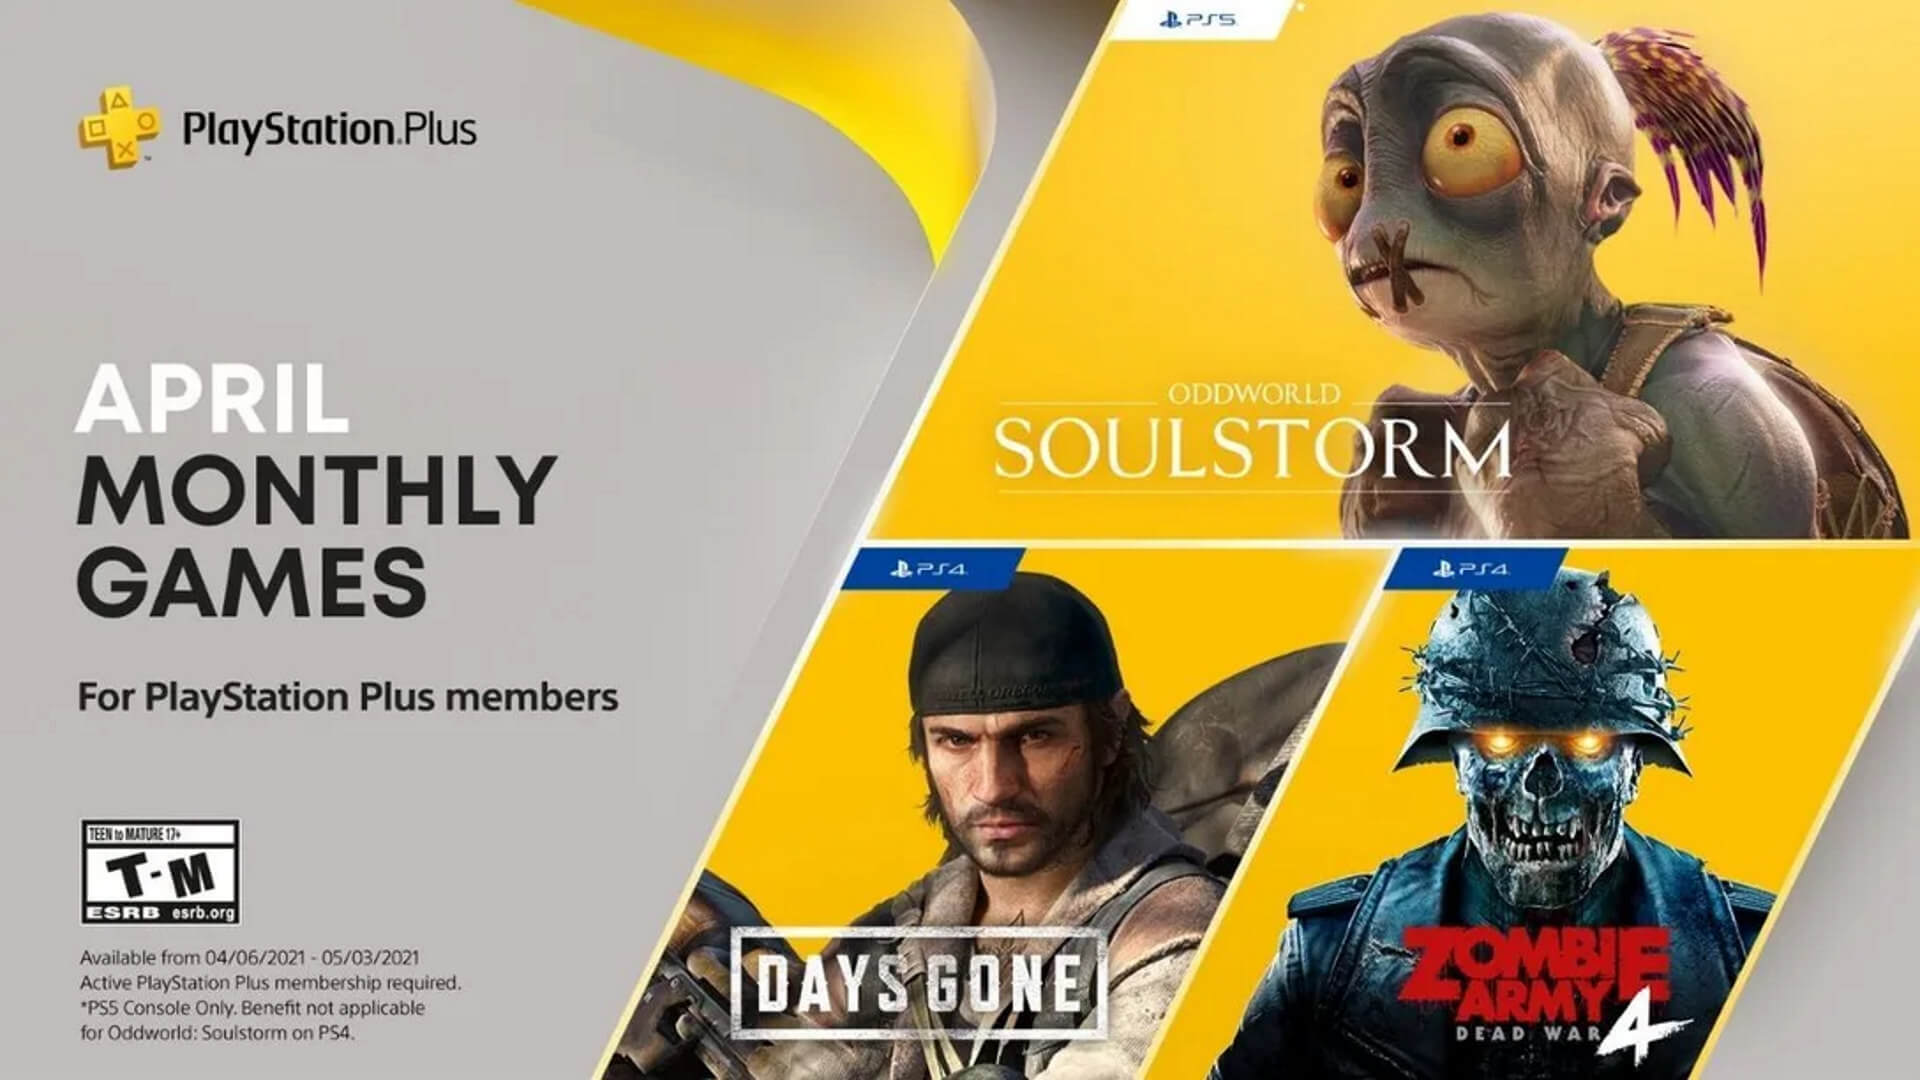 PlayStation Plus April 2021 Announcement